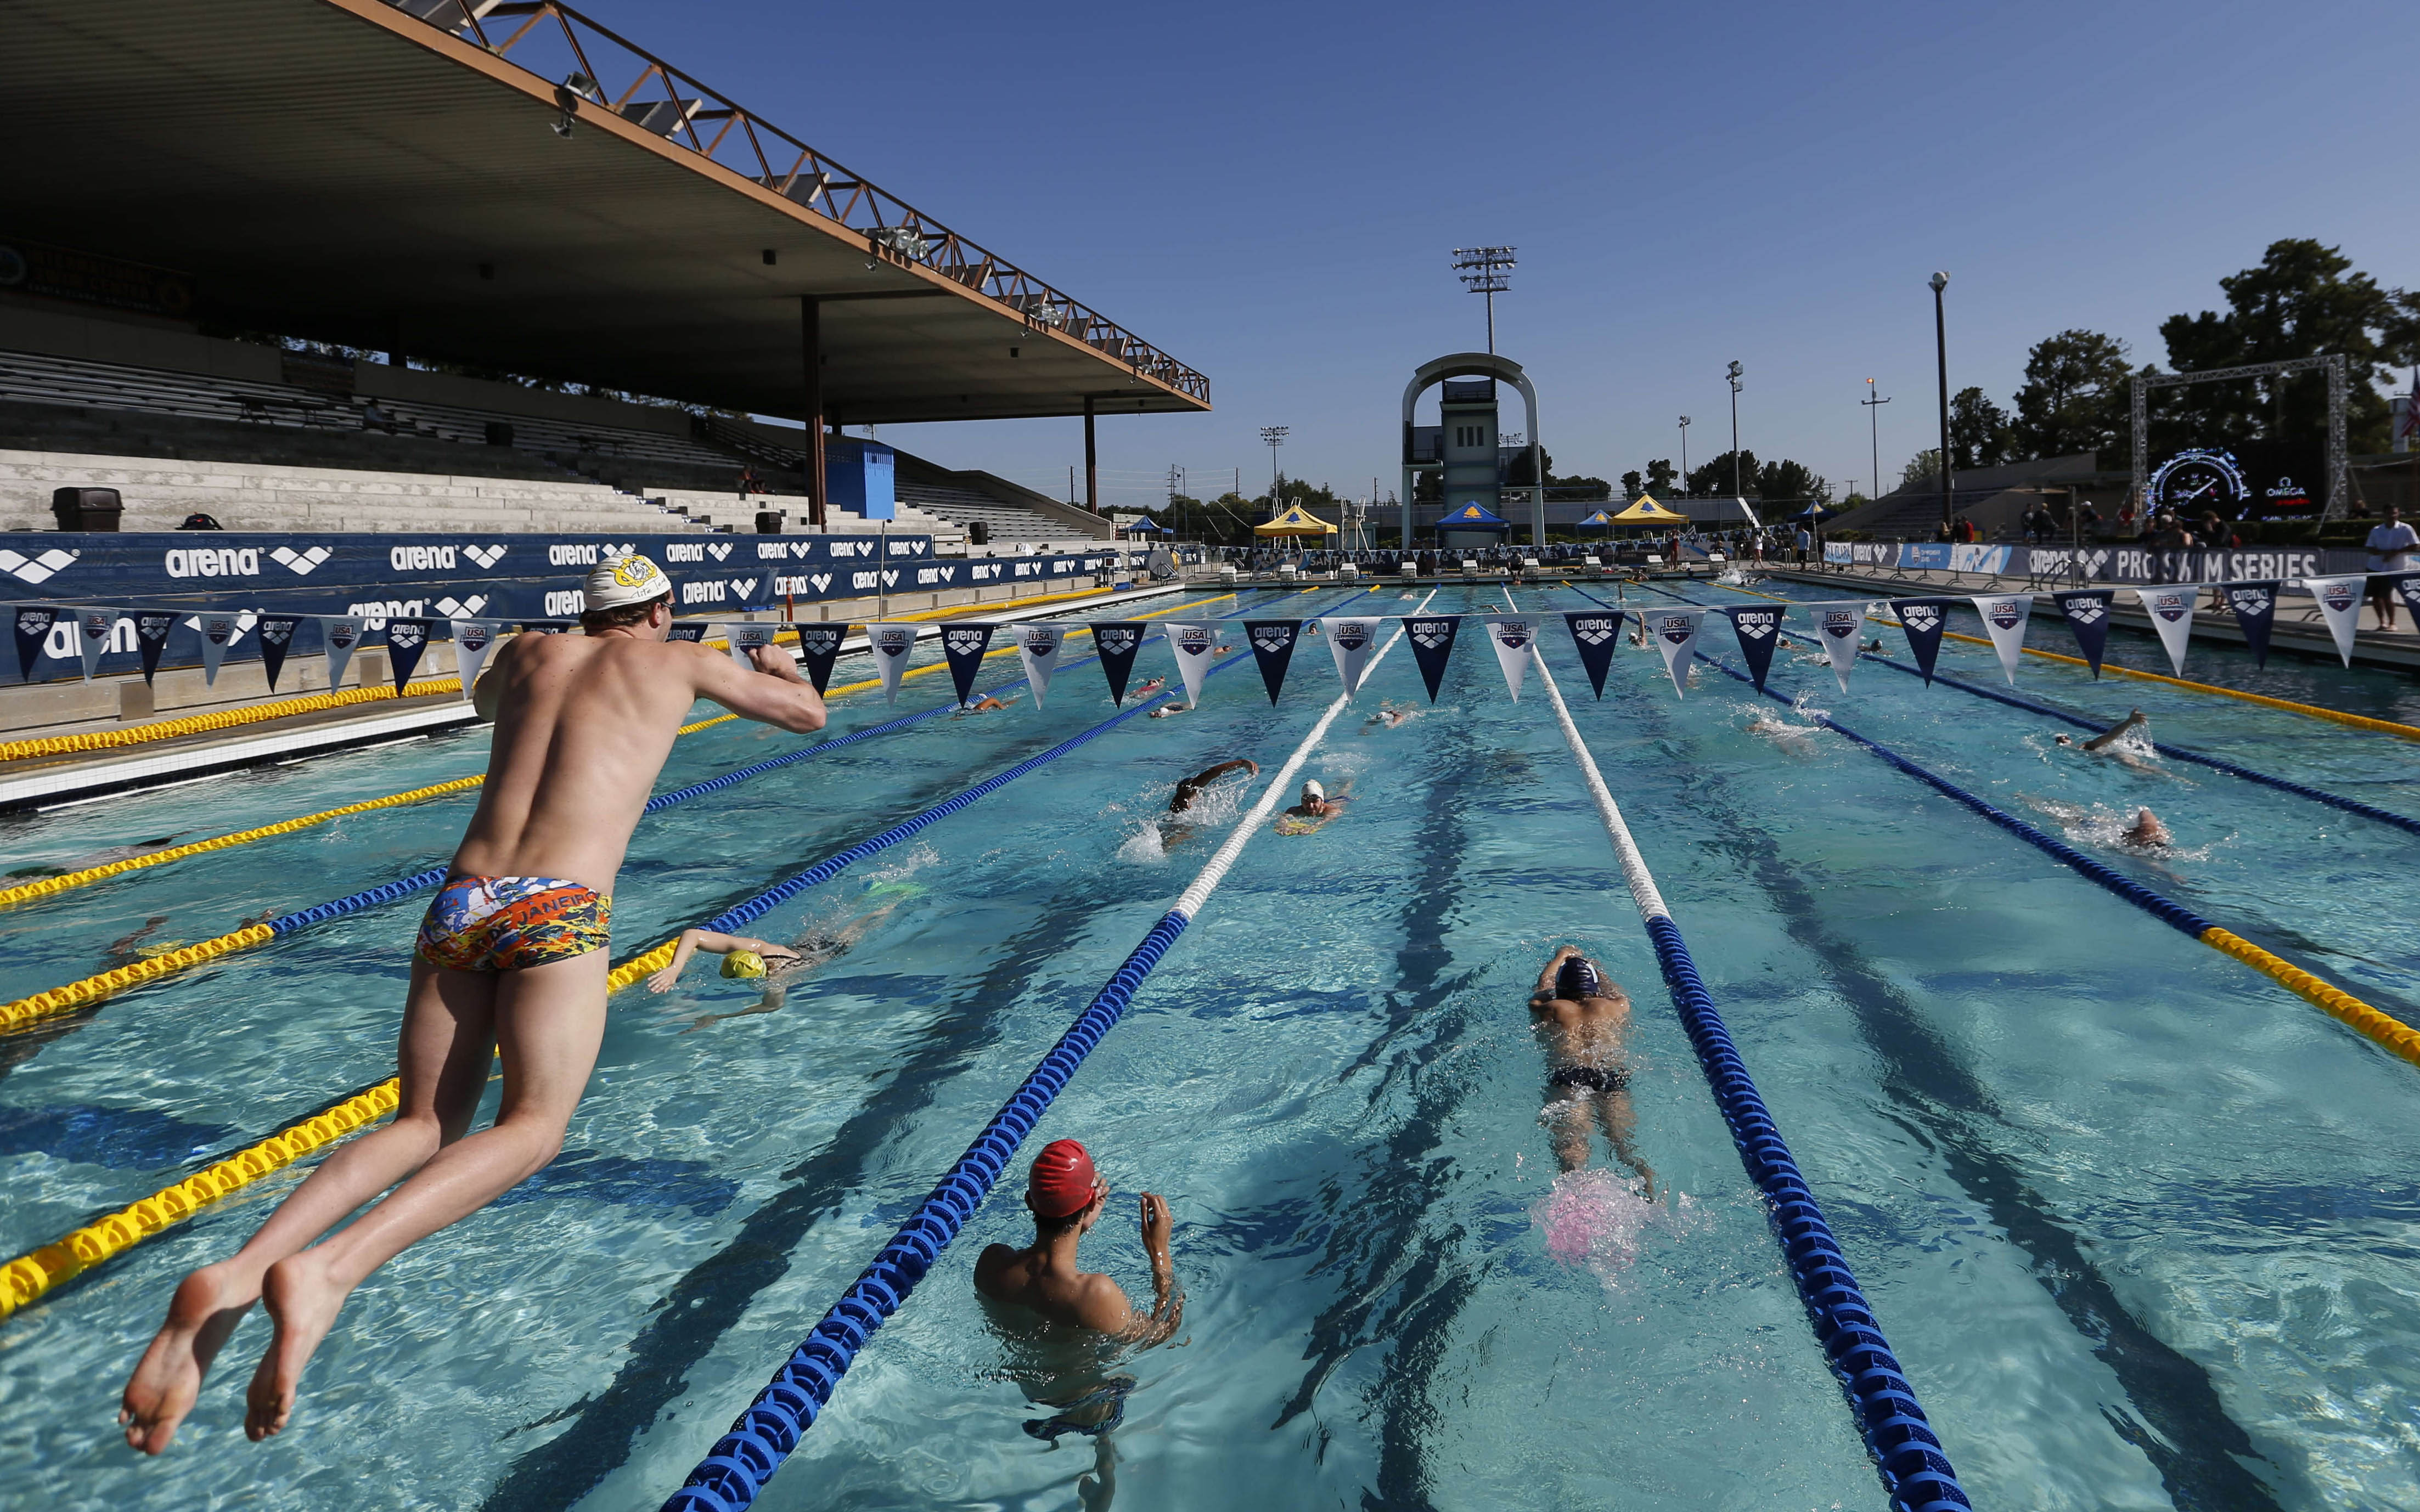 swimming arena pro series santa clara day one swimming world news